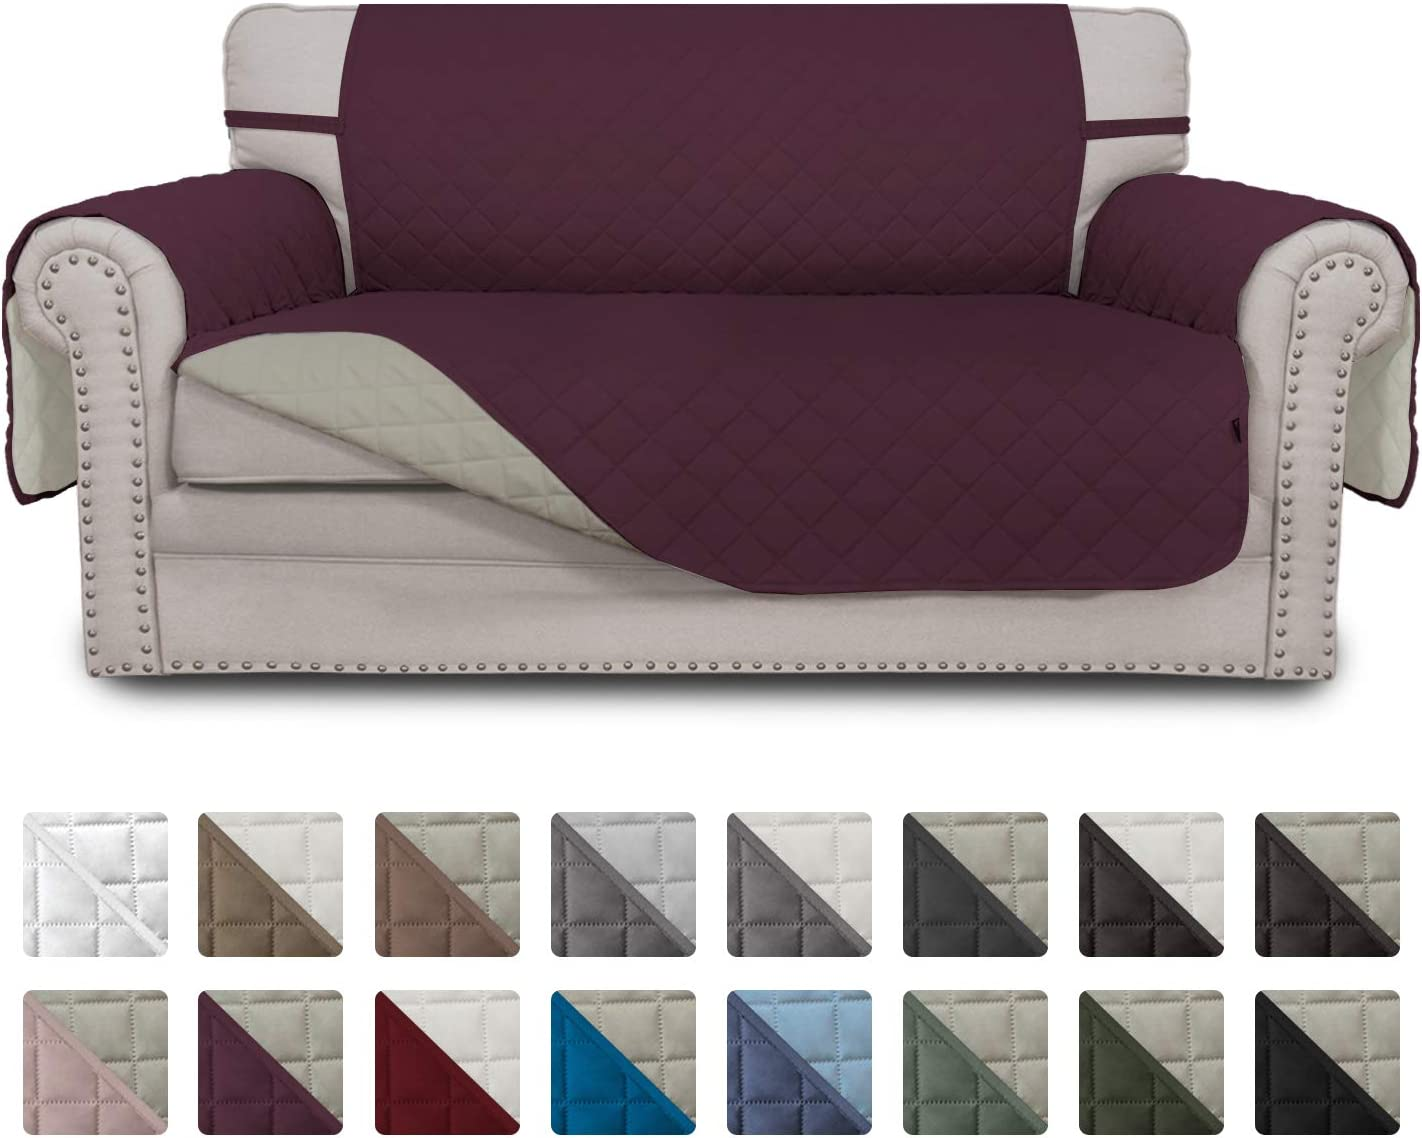 Easy-Going Sofa Slipcover Reversible Loveseat Cover Water Resistant Couch Cover Furniture Protector with Elastic Straps for Pets Kids Children Dog Cat(Loveseat,Wine/Beige)